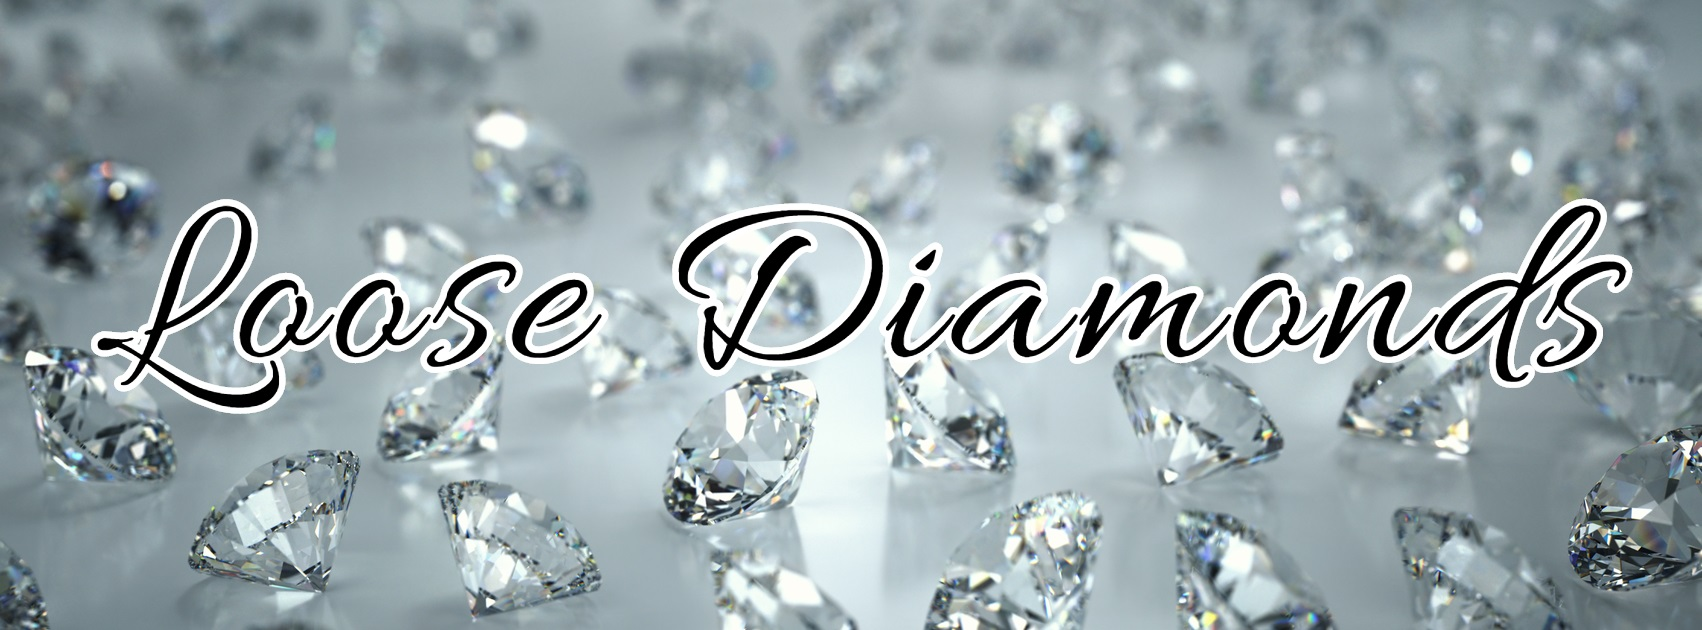 Antwerp Diamonds Jewelry and Fine Watches - Loose Diamonds